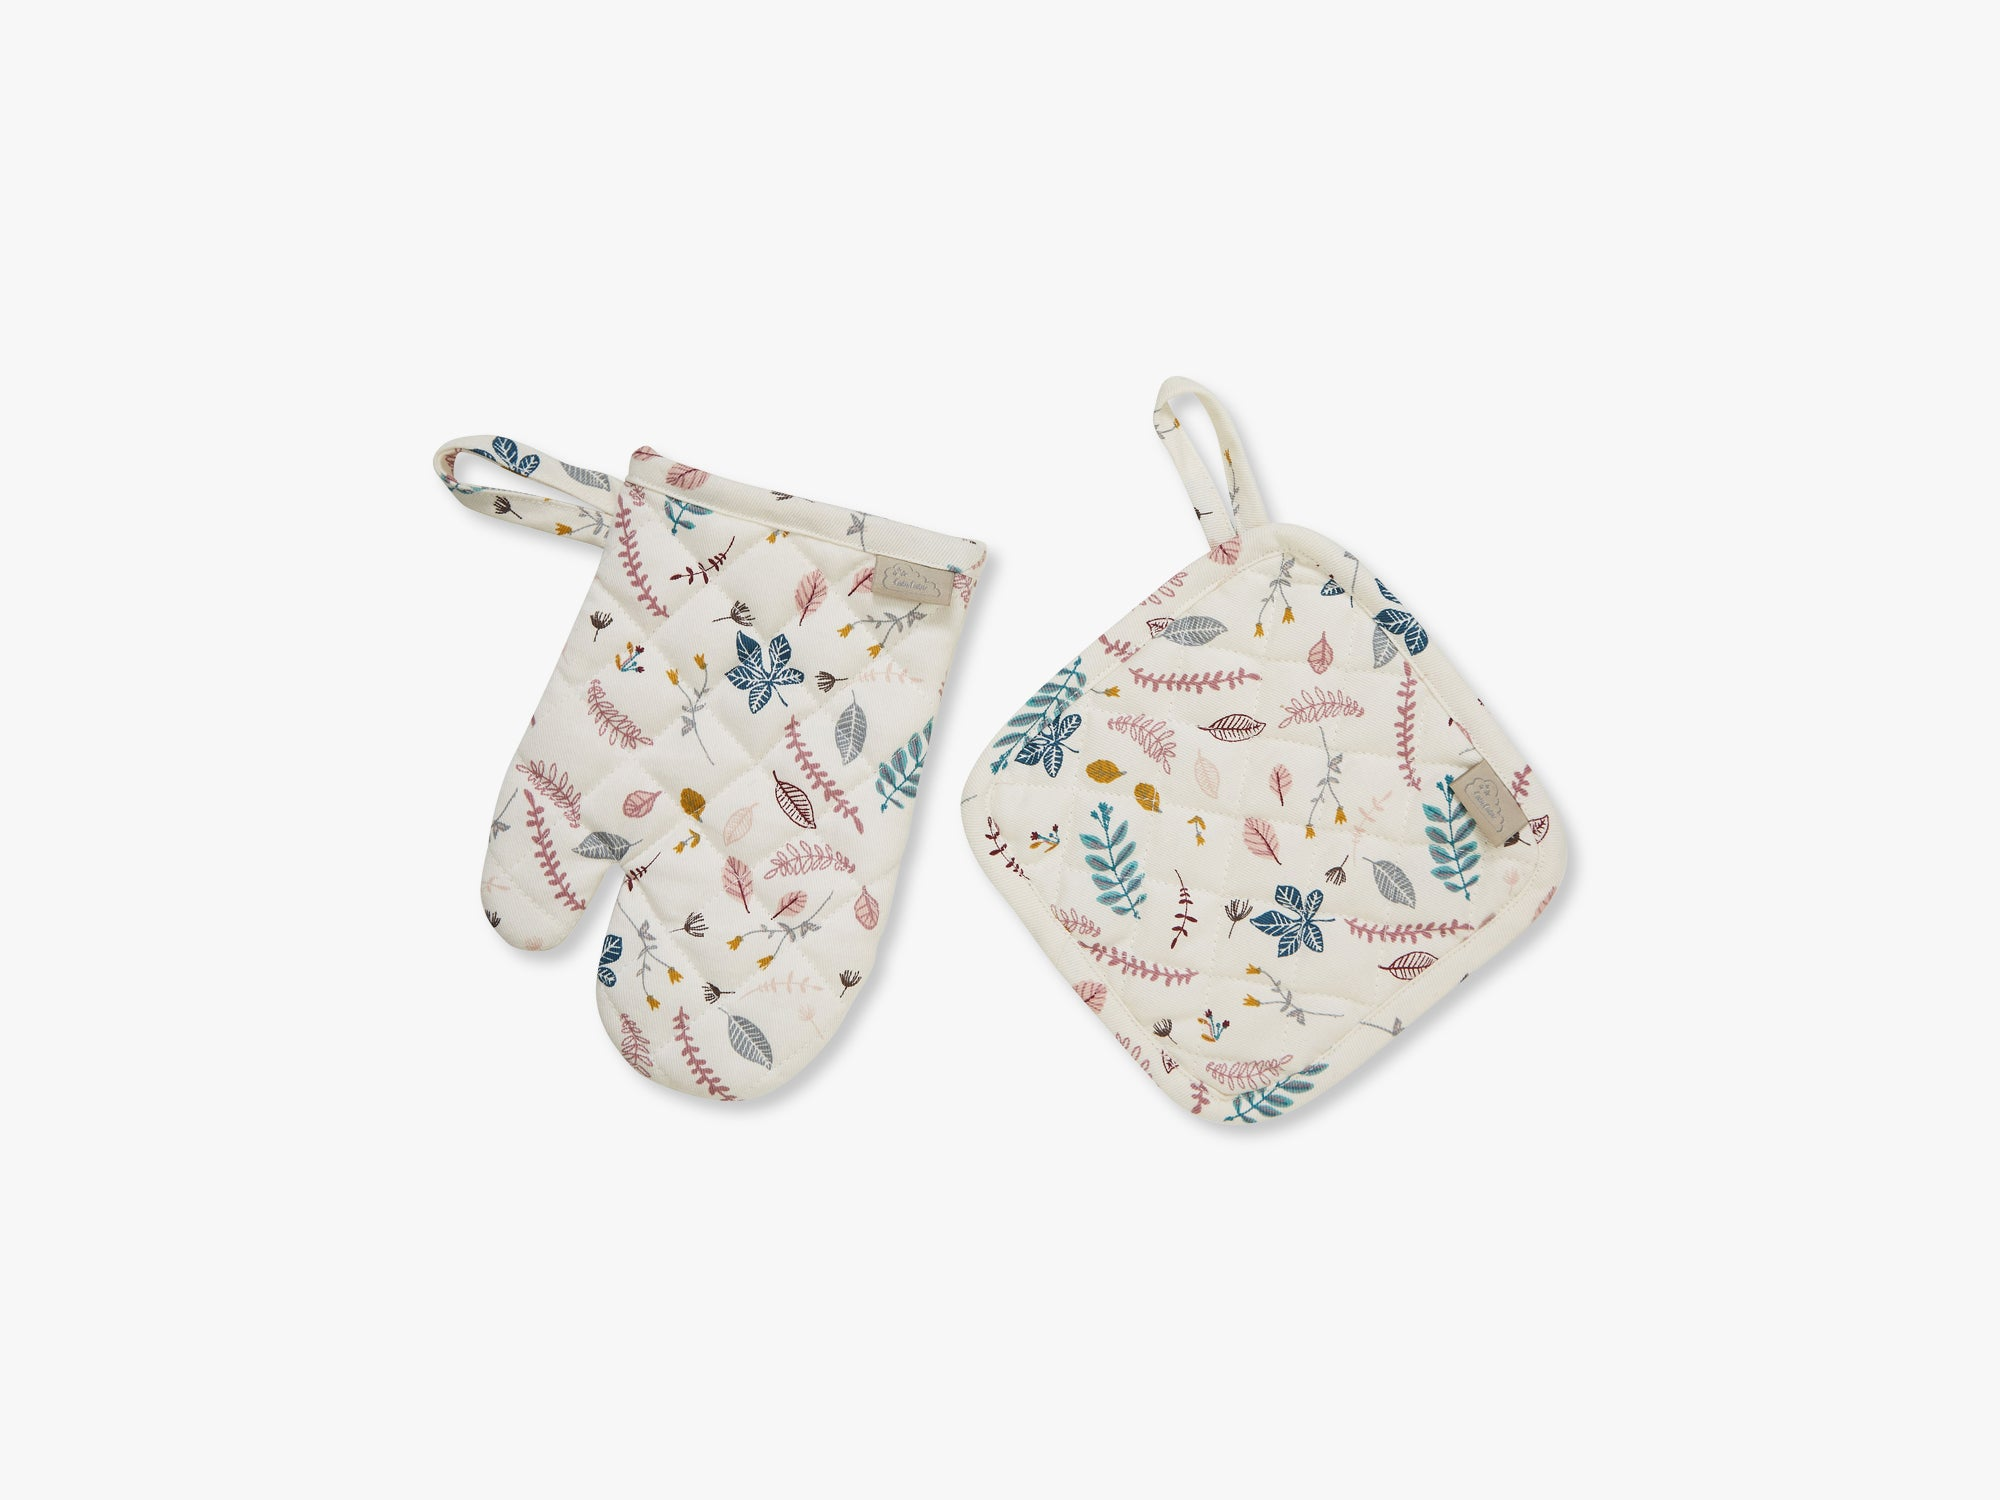 Kids Oven Glove and Pot Holder Play set, Pressed Leaves Rose fra Cam Cam Copenhagen